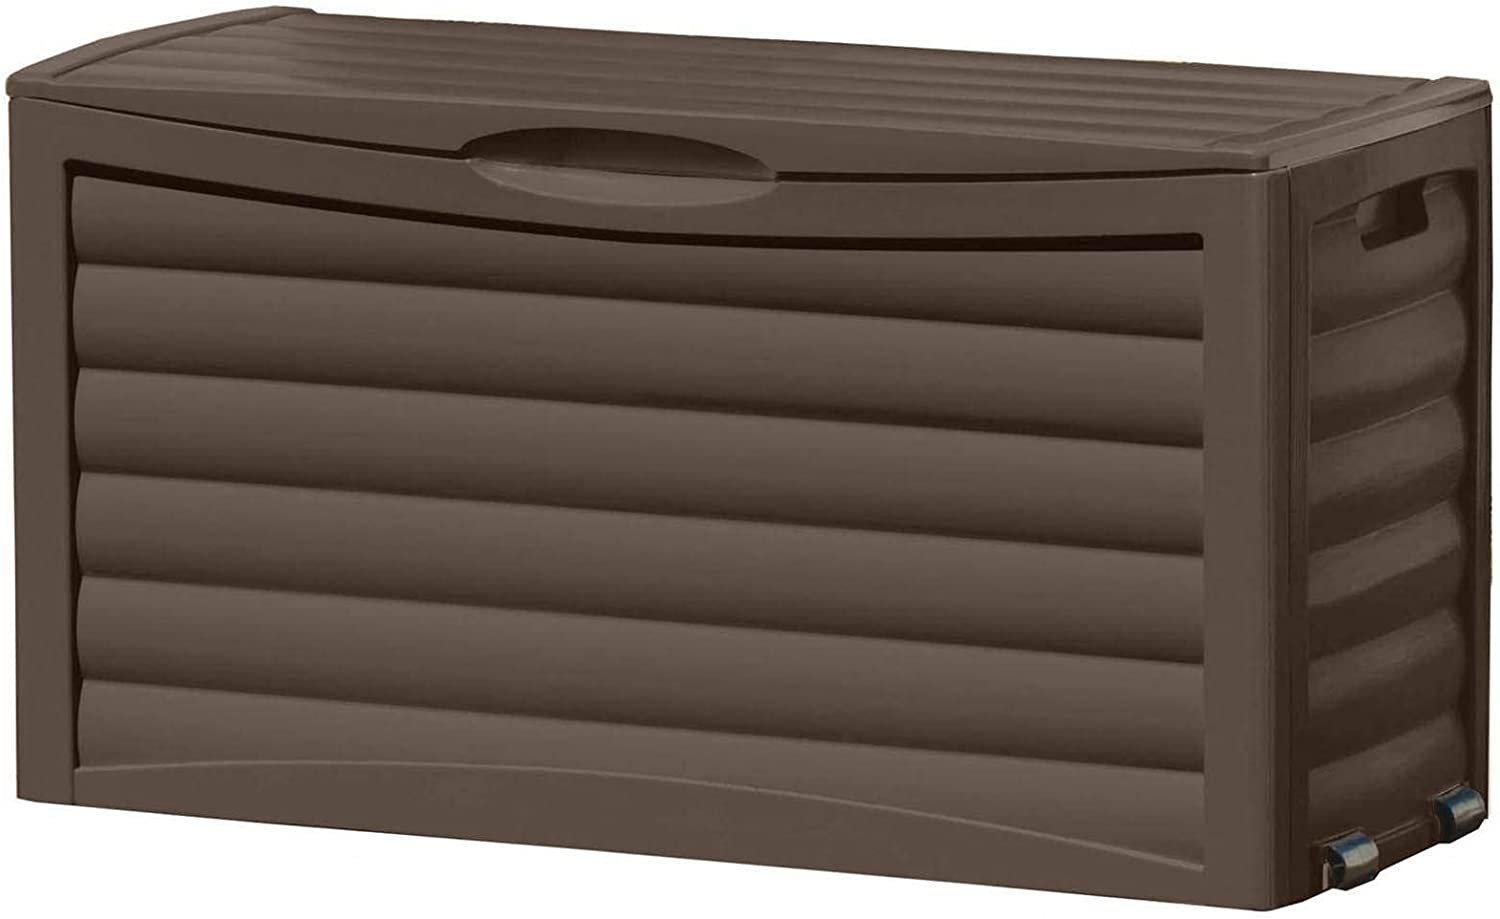 Suncast 63-Gallon Box-Waterproof Outdoor Storage Container for Patio Furniture, Gardening Equipment, and Yard Tools, Store Items on Deck, Porch, Backyard, Brown